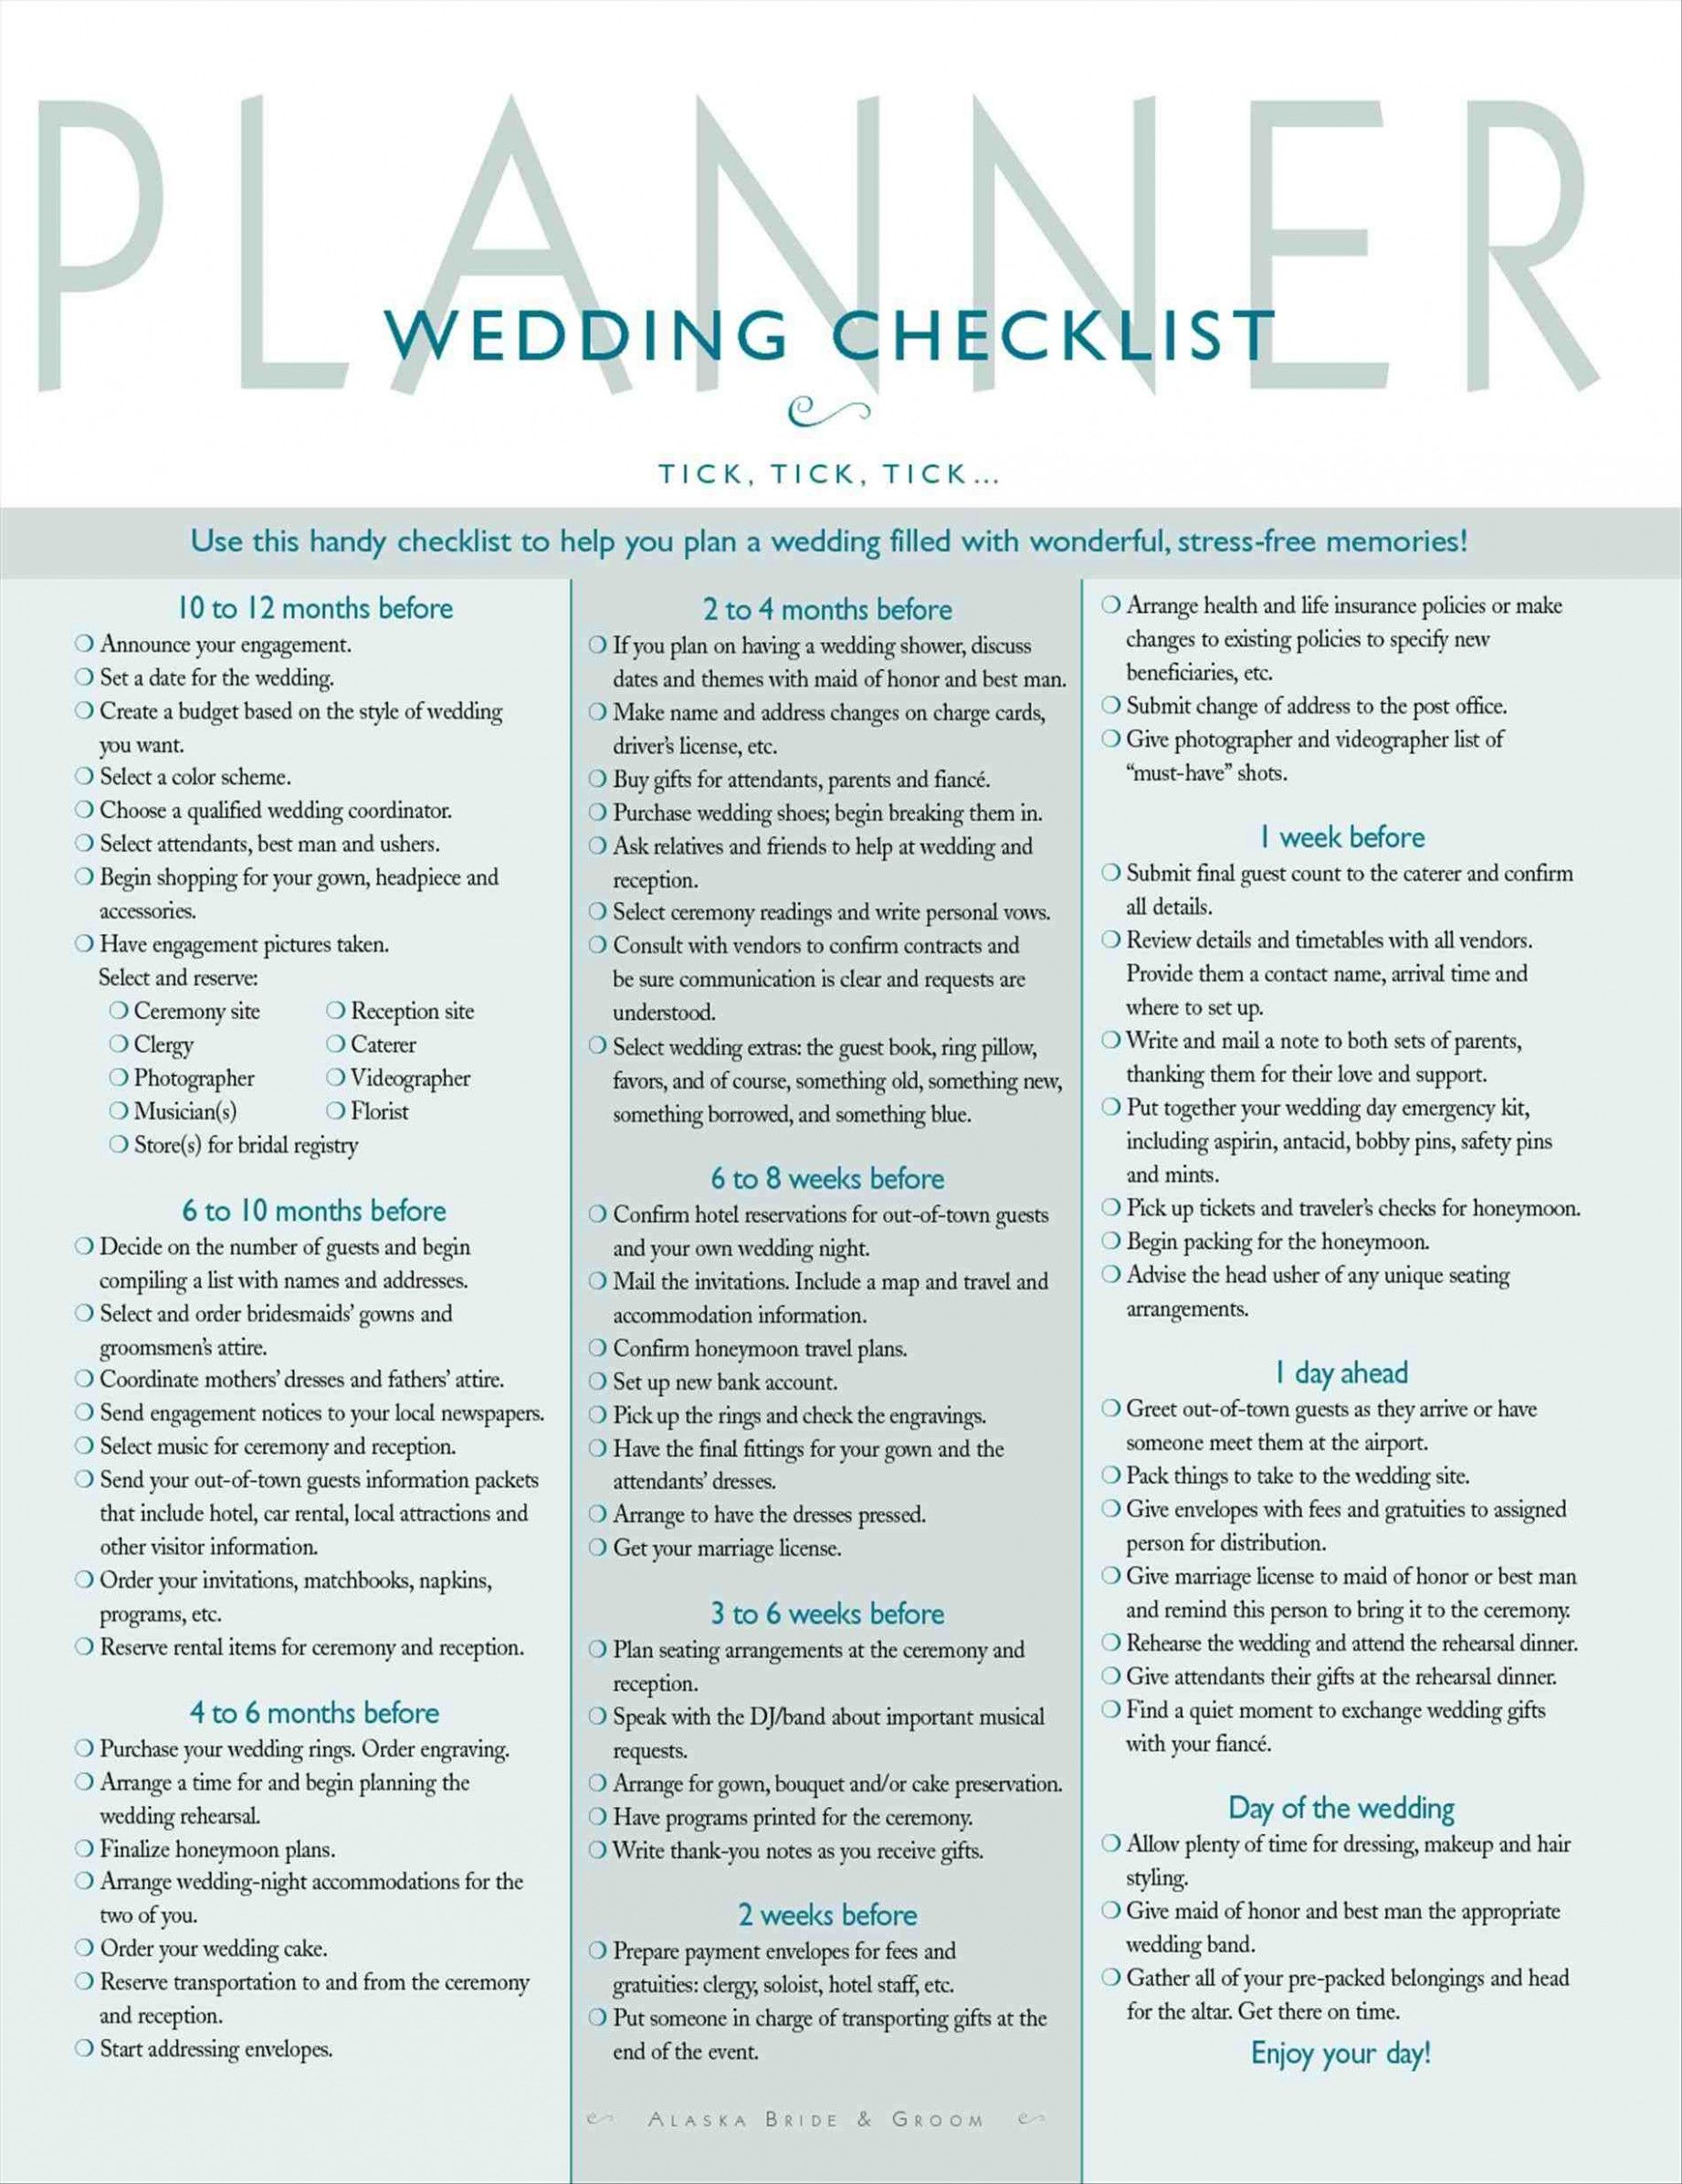 Printable Wedding Checklist The Knot